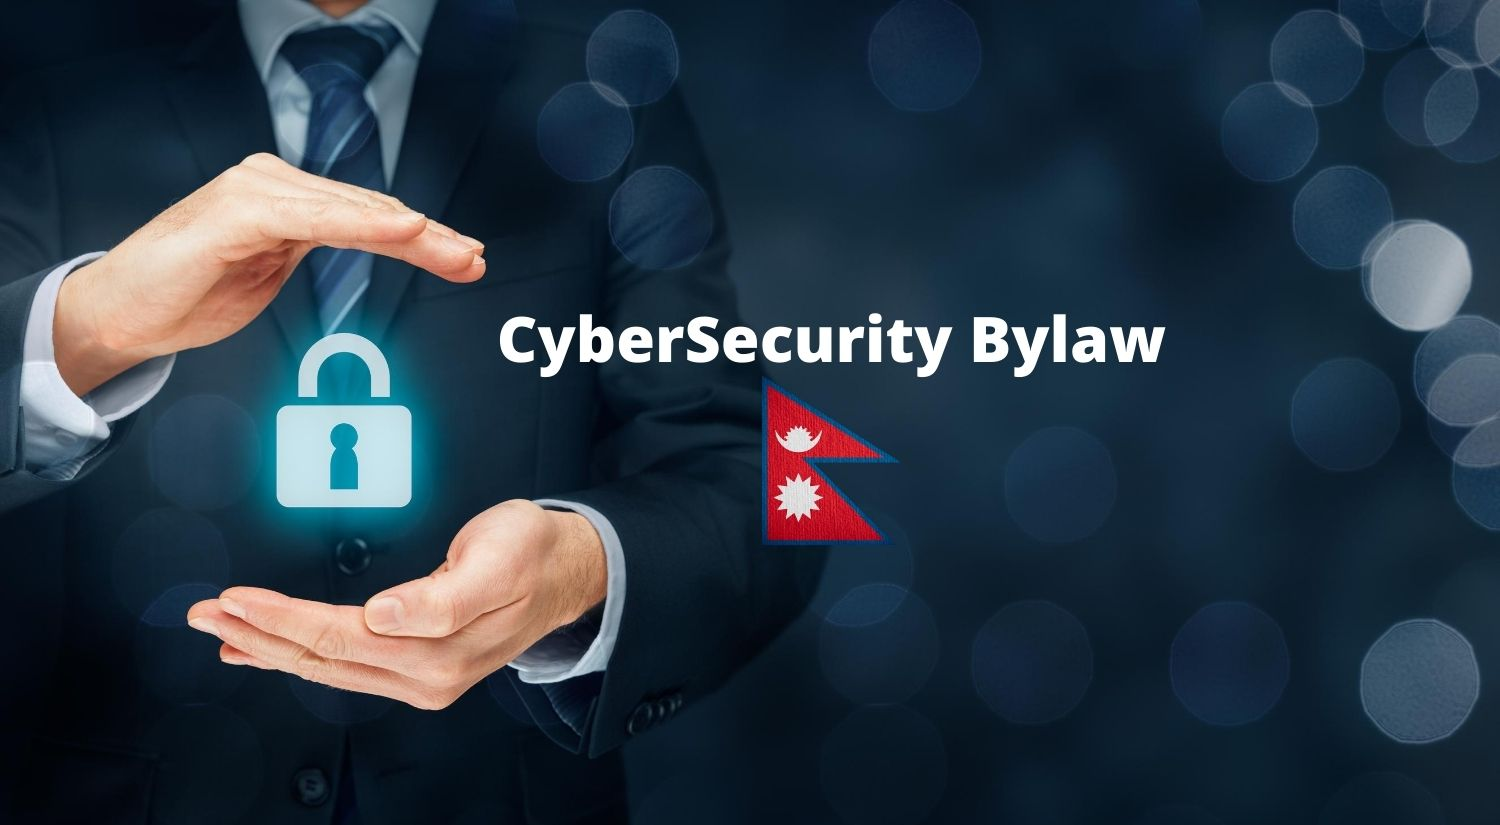 Cyber Security bylaw 2077 Nepal